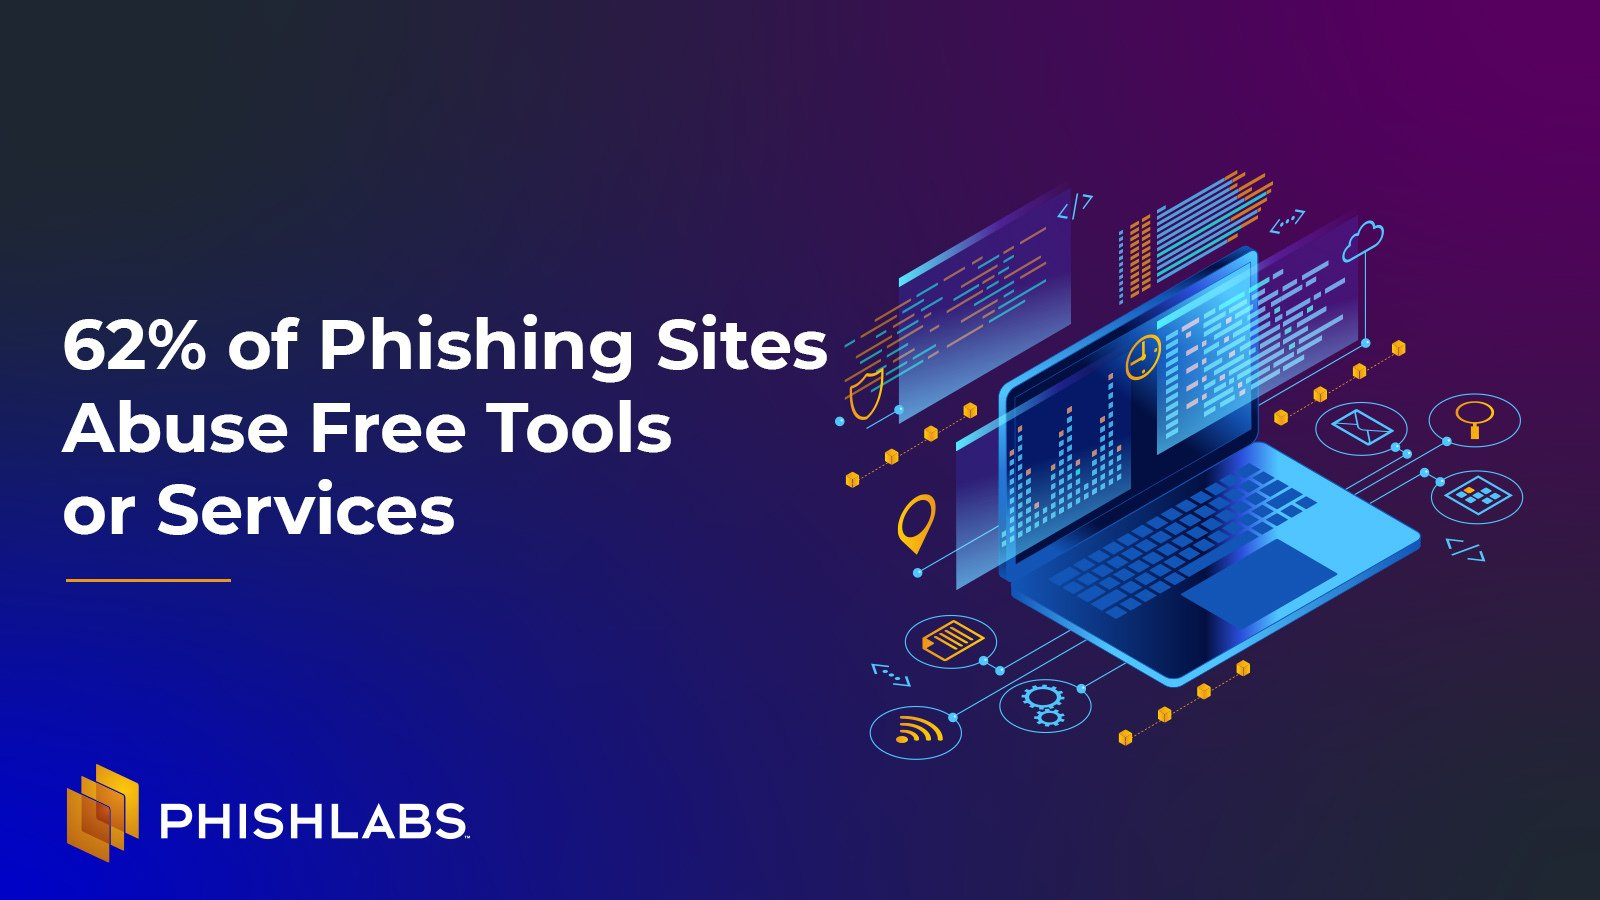 62% of Phishing Sites Abuse Free Tools or Services